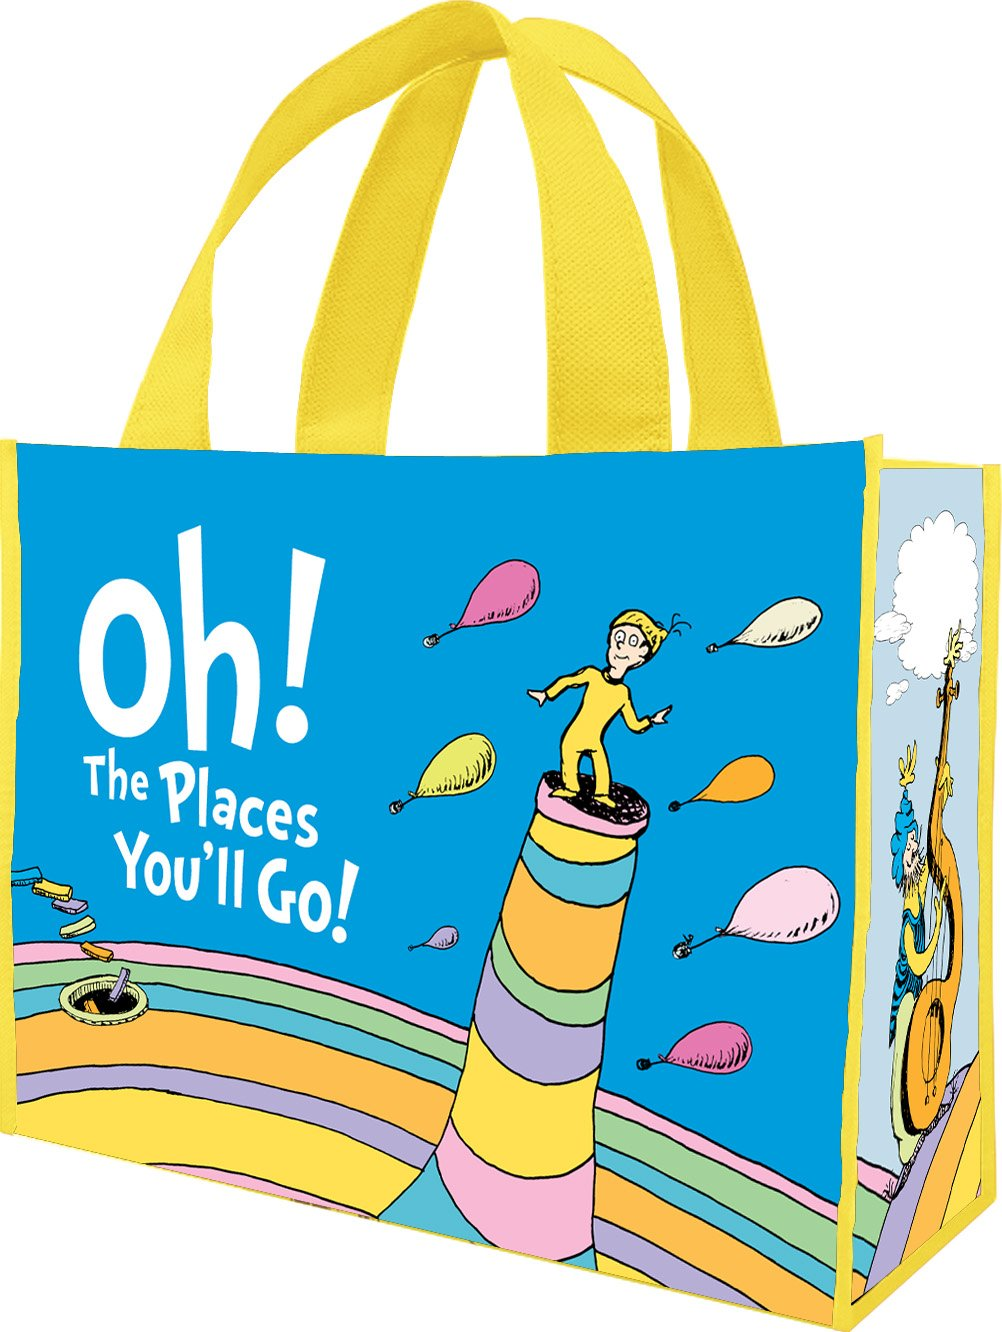 Dr. Seuss Oh the Places You'll Large Recycled Tote 17773 by Vandor (Image #1)